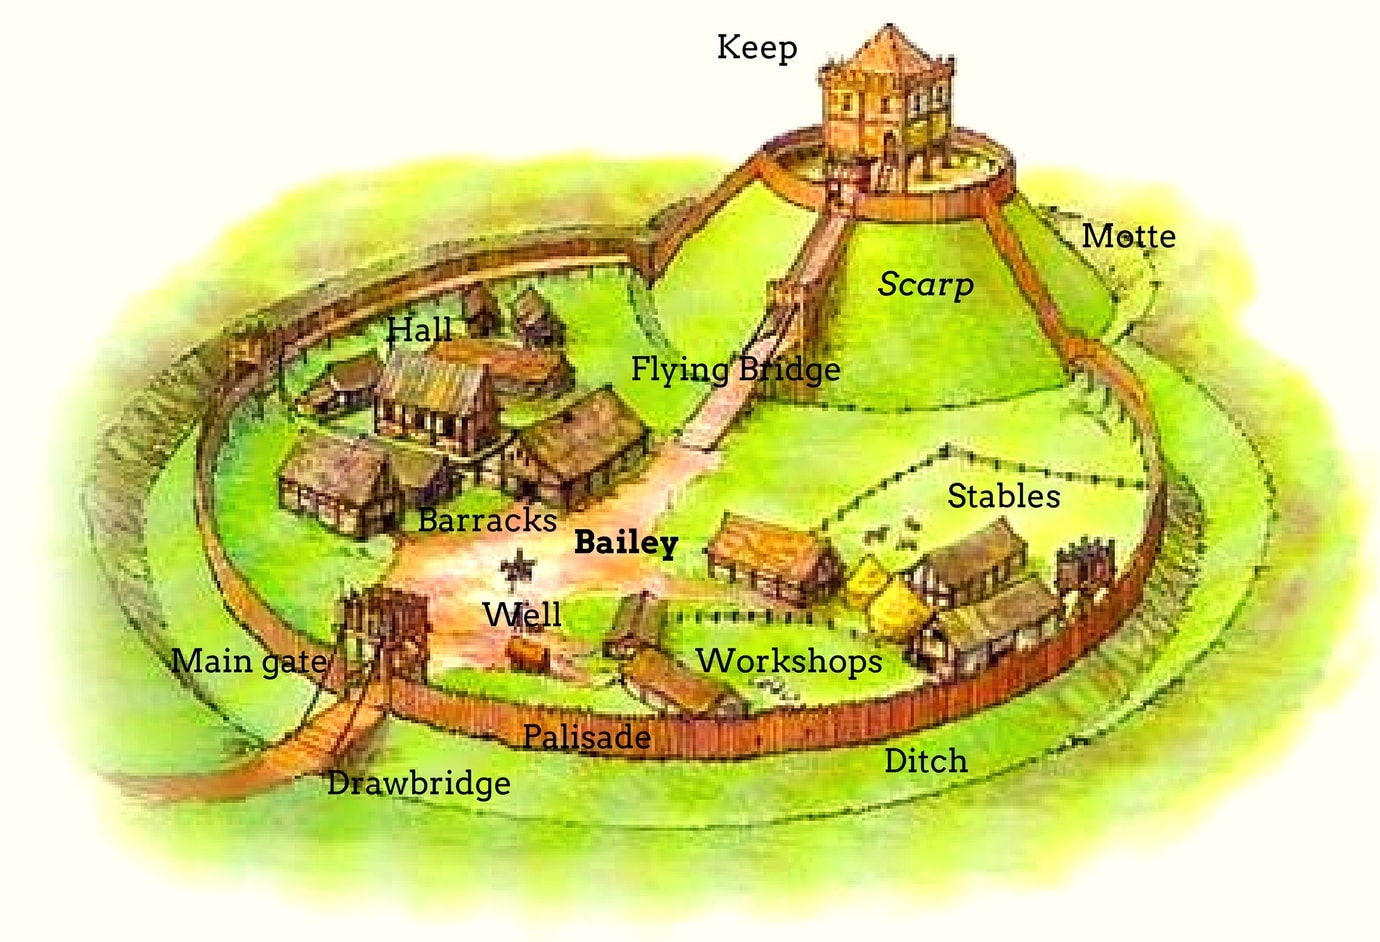 Motte and Bailey Castle, detailed diagram